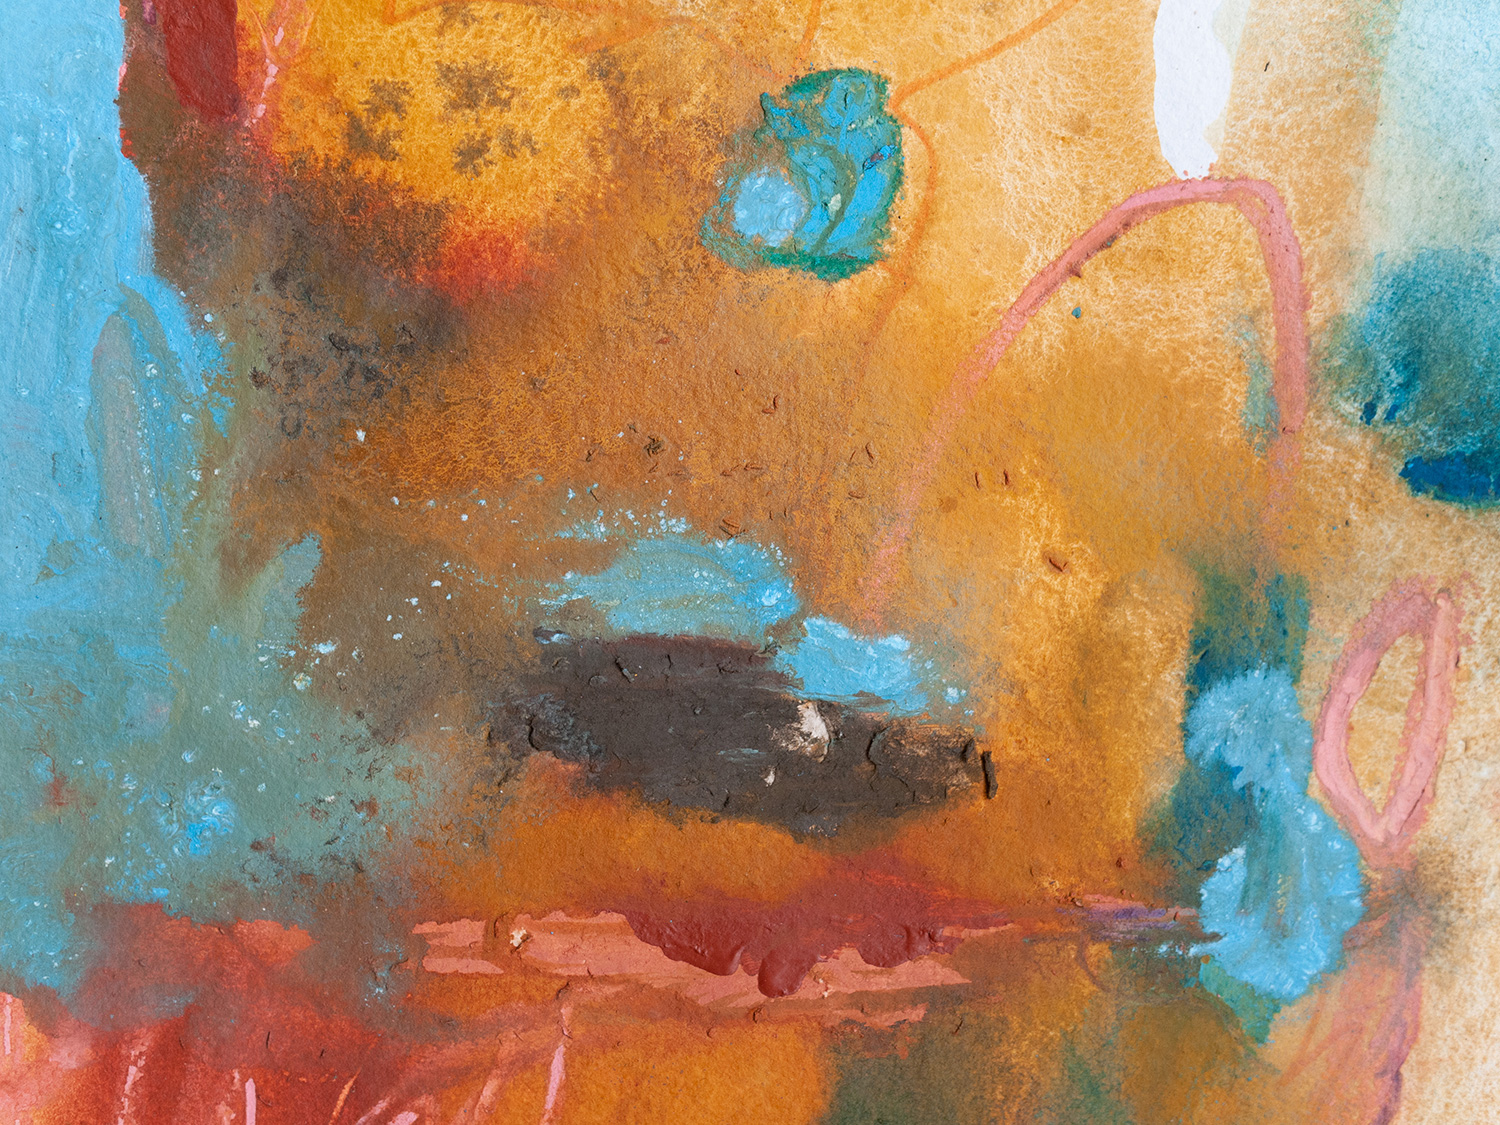 Absolute-particular-II-detail_abstract-expressionist-painting.jpg